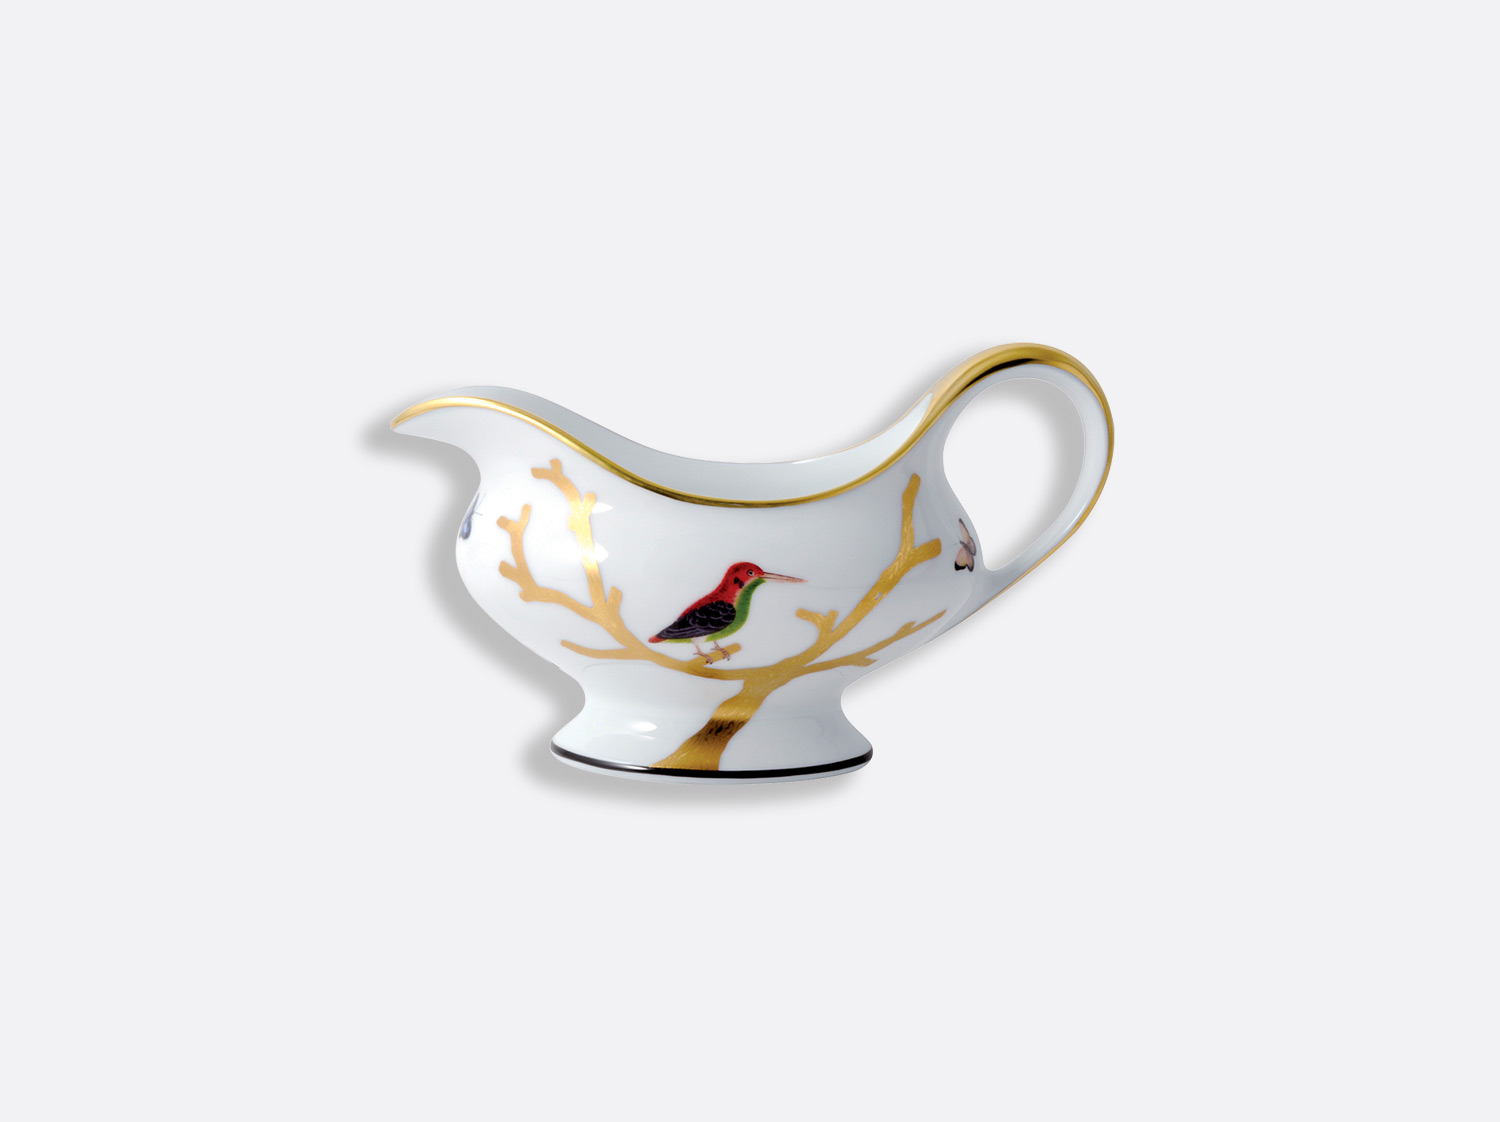 China Gravy boat of the collection Aux oiseaux | Bernardaud